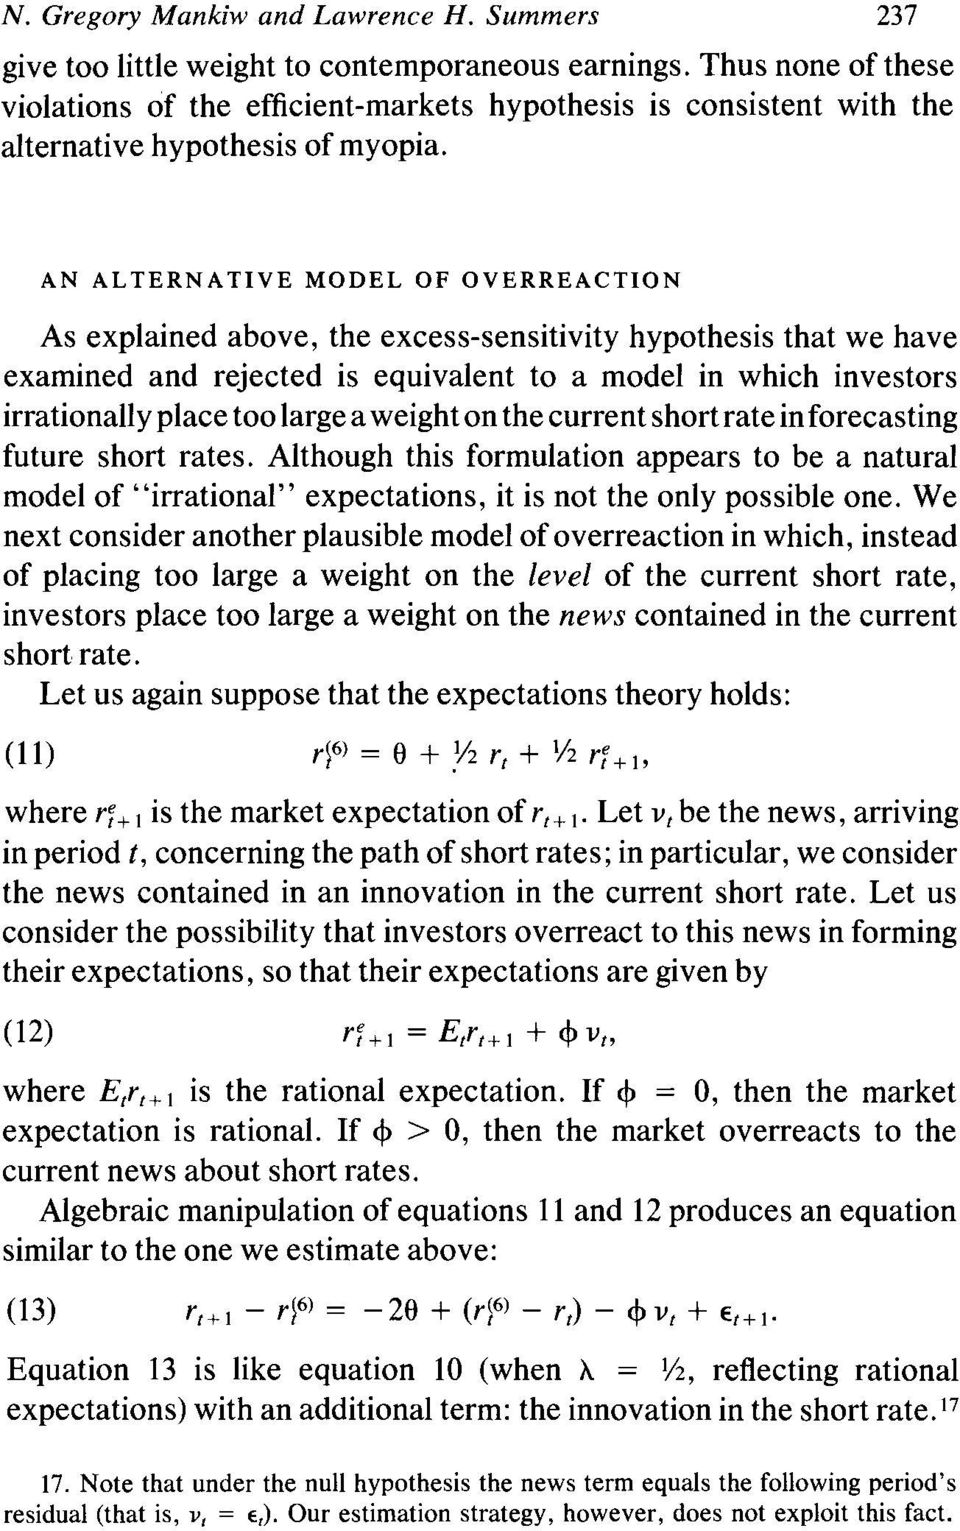 AN ALTERNATIVE MODEL OF OVERREACTION As explained above, the excess-sensitivity hypothesis that we have examined and rejected is equivalent to a model in which investors irrationally place too large